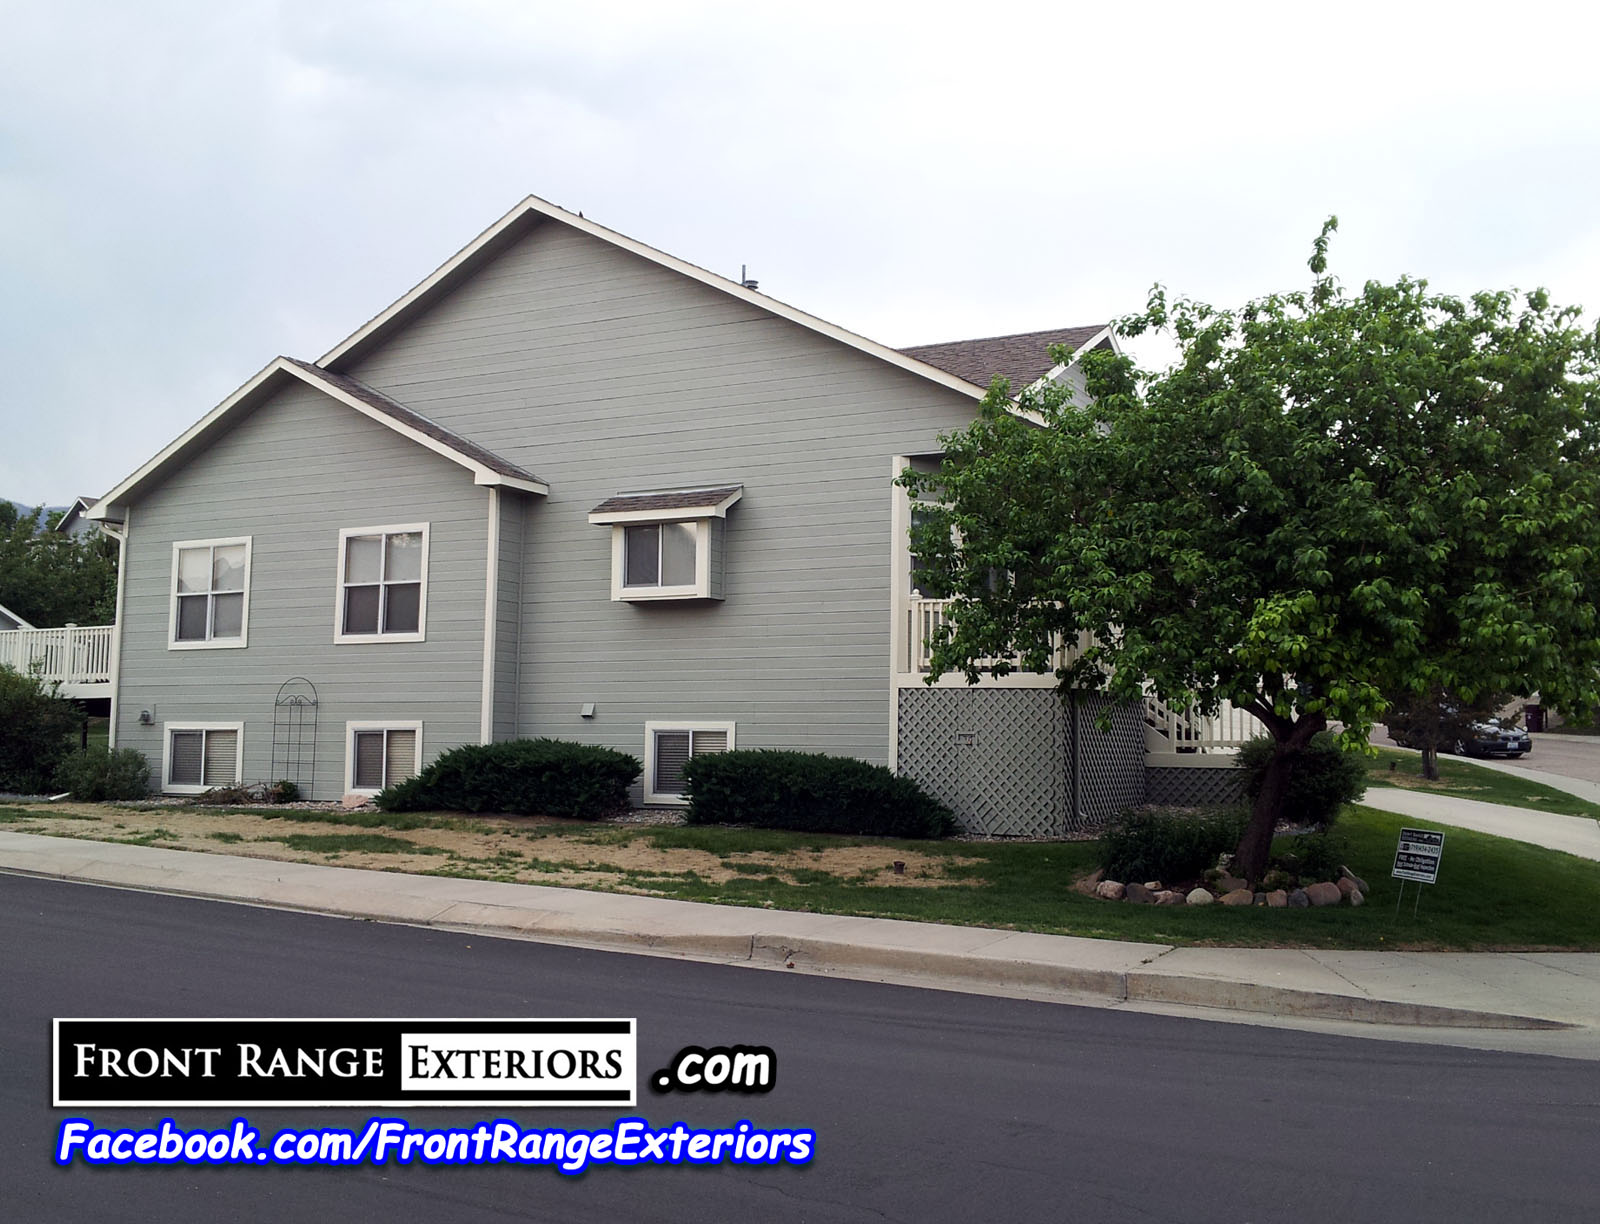 Paint contractors in colorado springs 80919 front range exteriors inc - Colorado springs exterior house painting paint ...